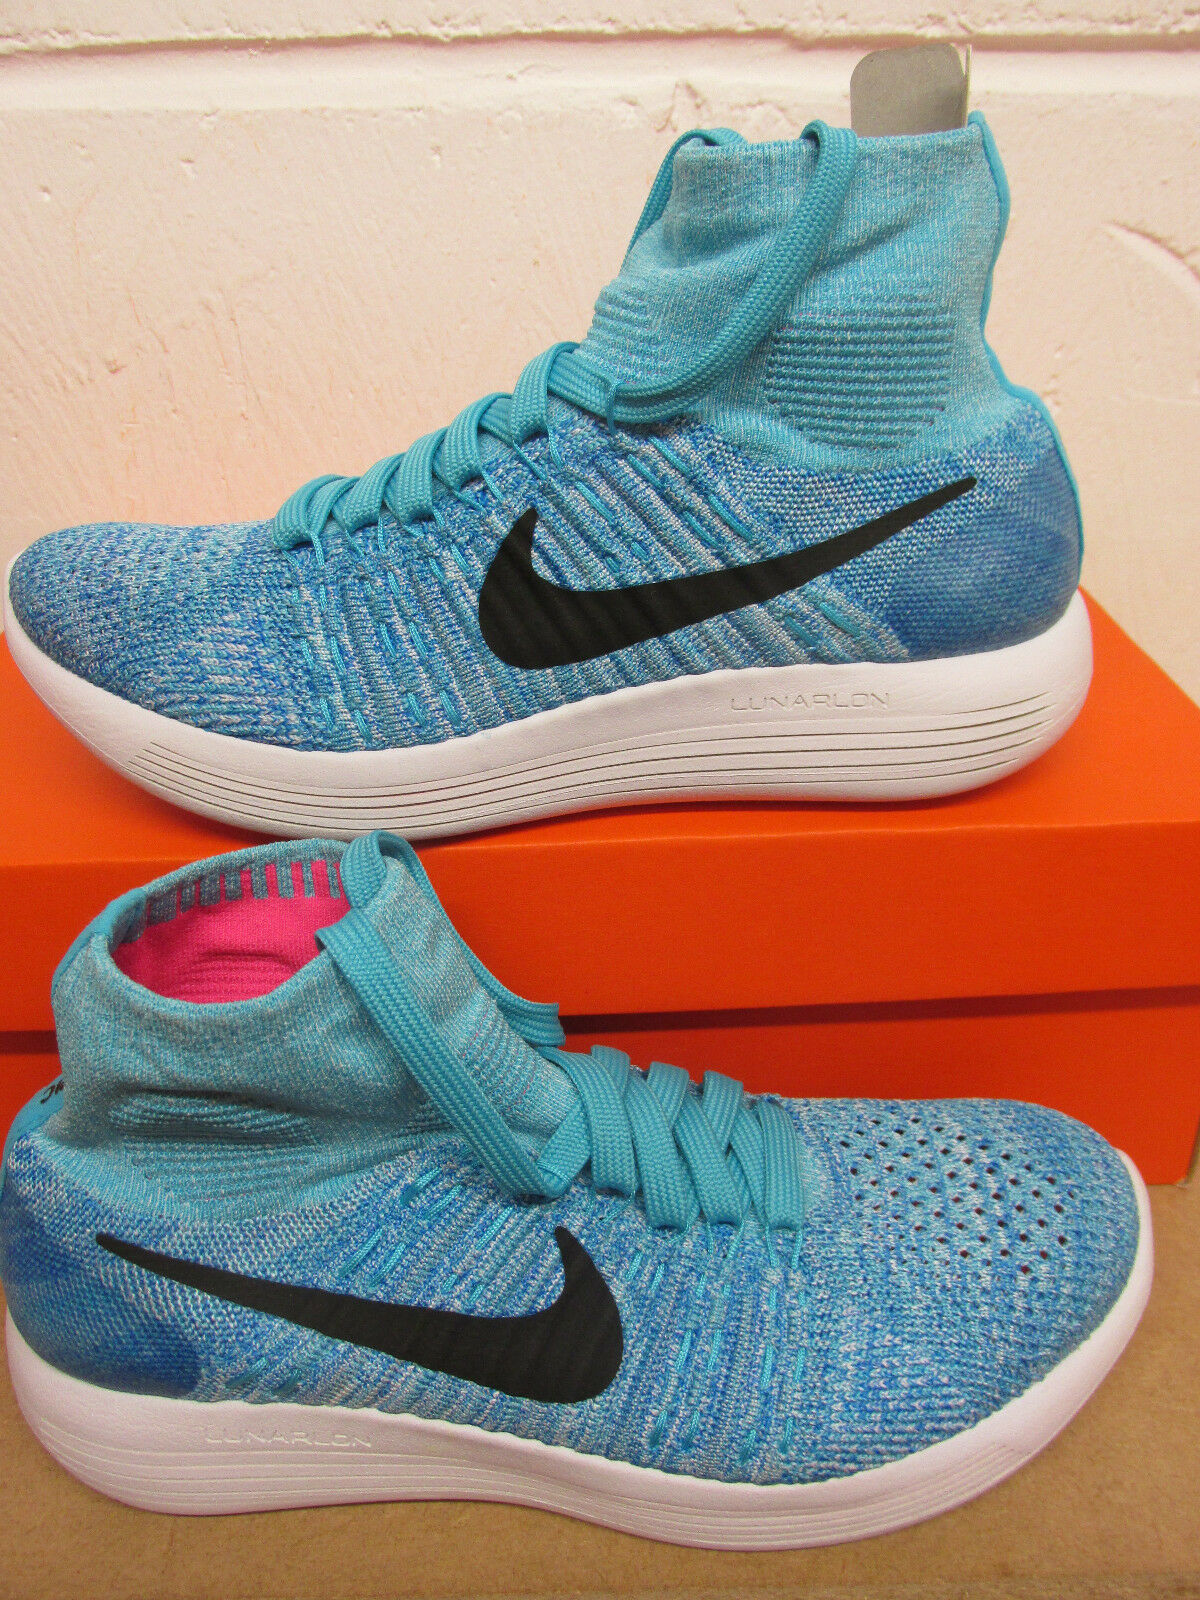 Nike Womens Lunarepic Flyknit Running Trainers 818677 404 Sneakers Shoes